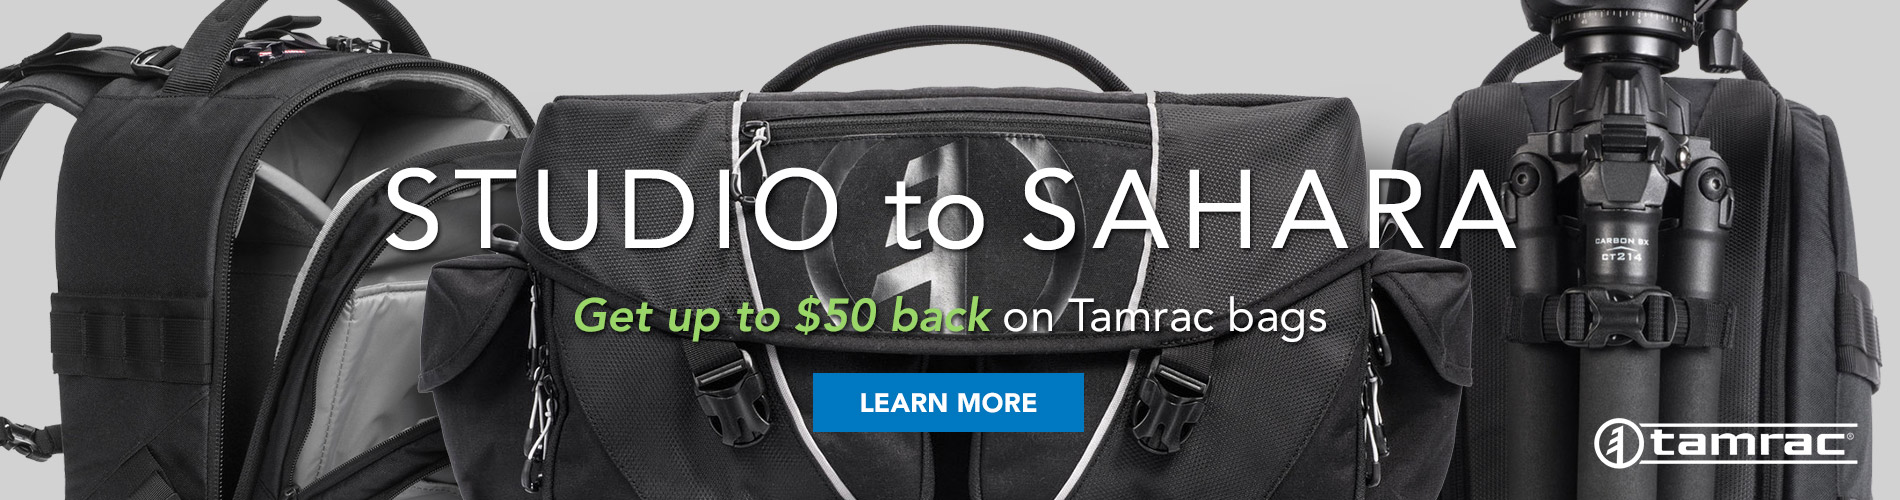 Studio to Sahara. Get up to $50 back on Tamrac bags. Learn More >